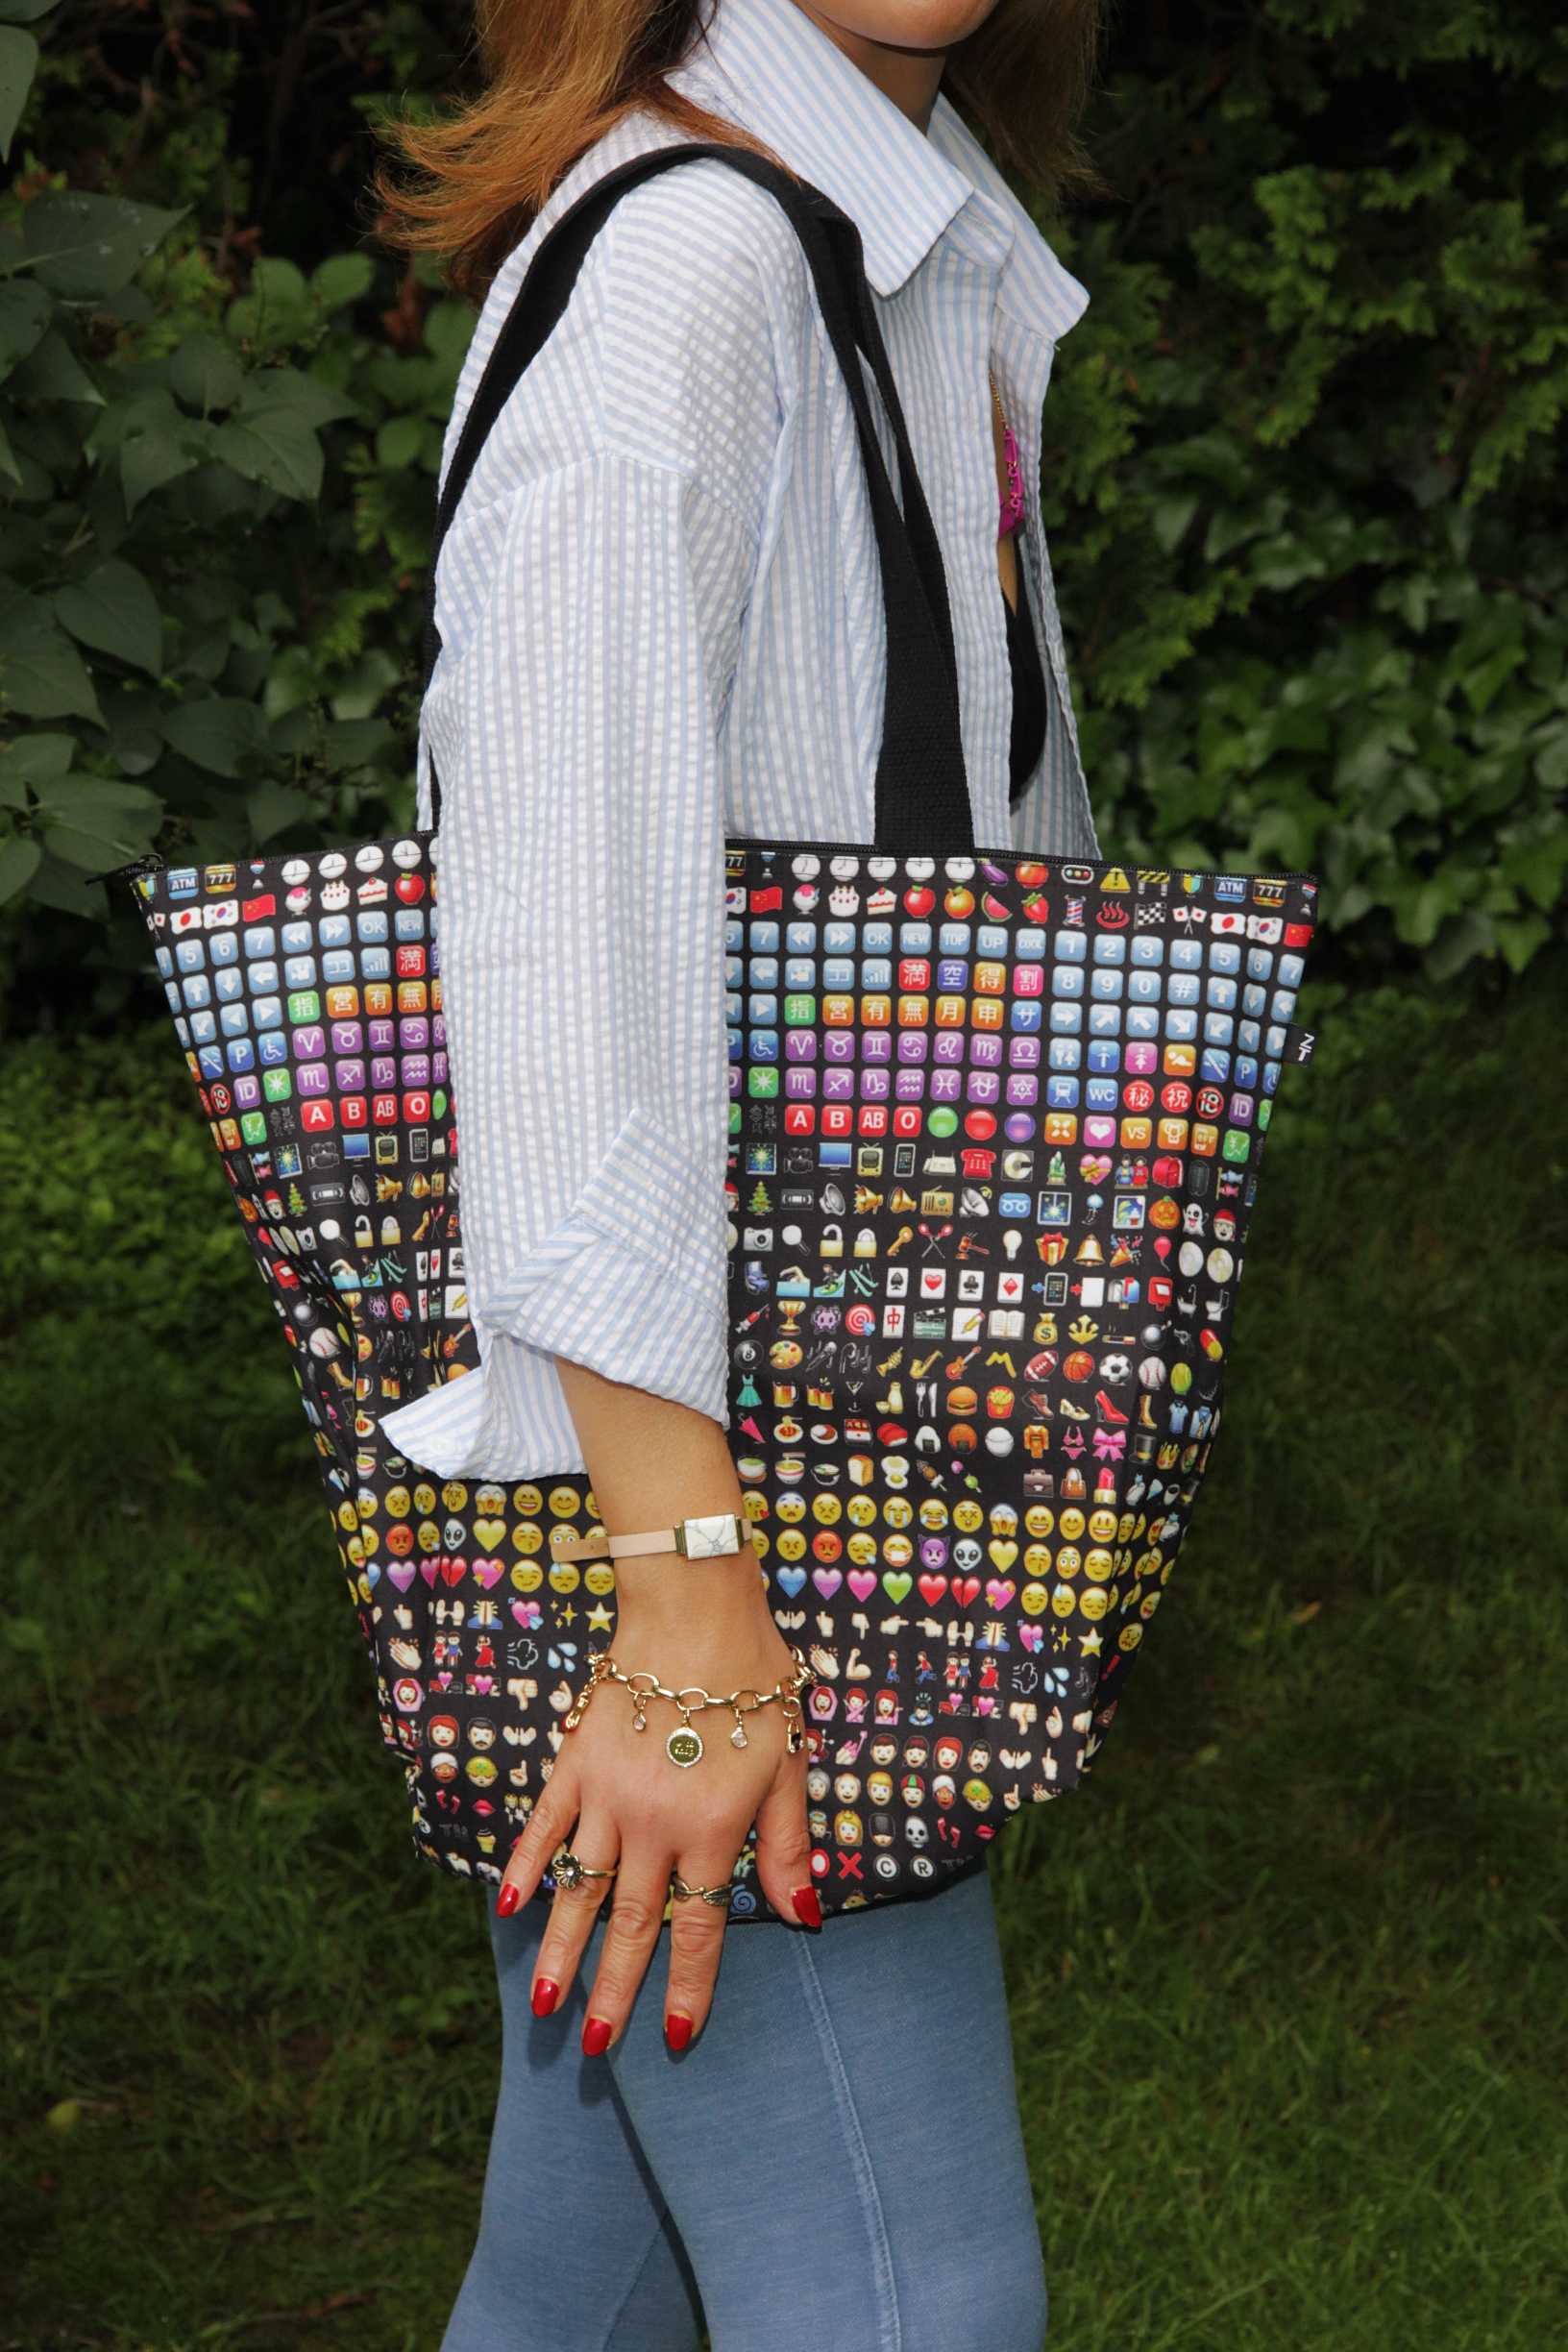 My shirt inspired me to purchase this Zara bag from  Thredup  !